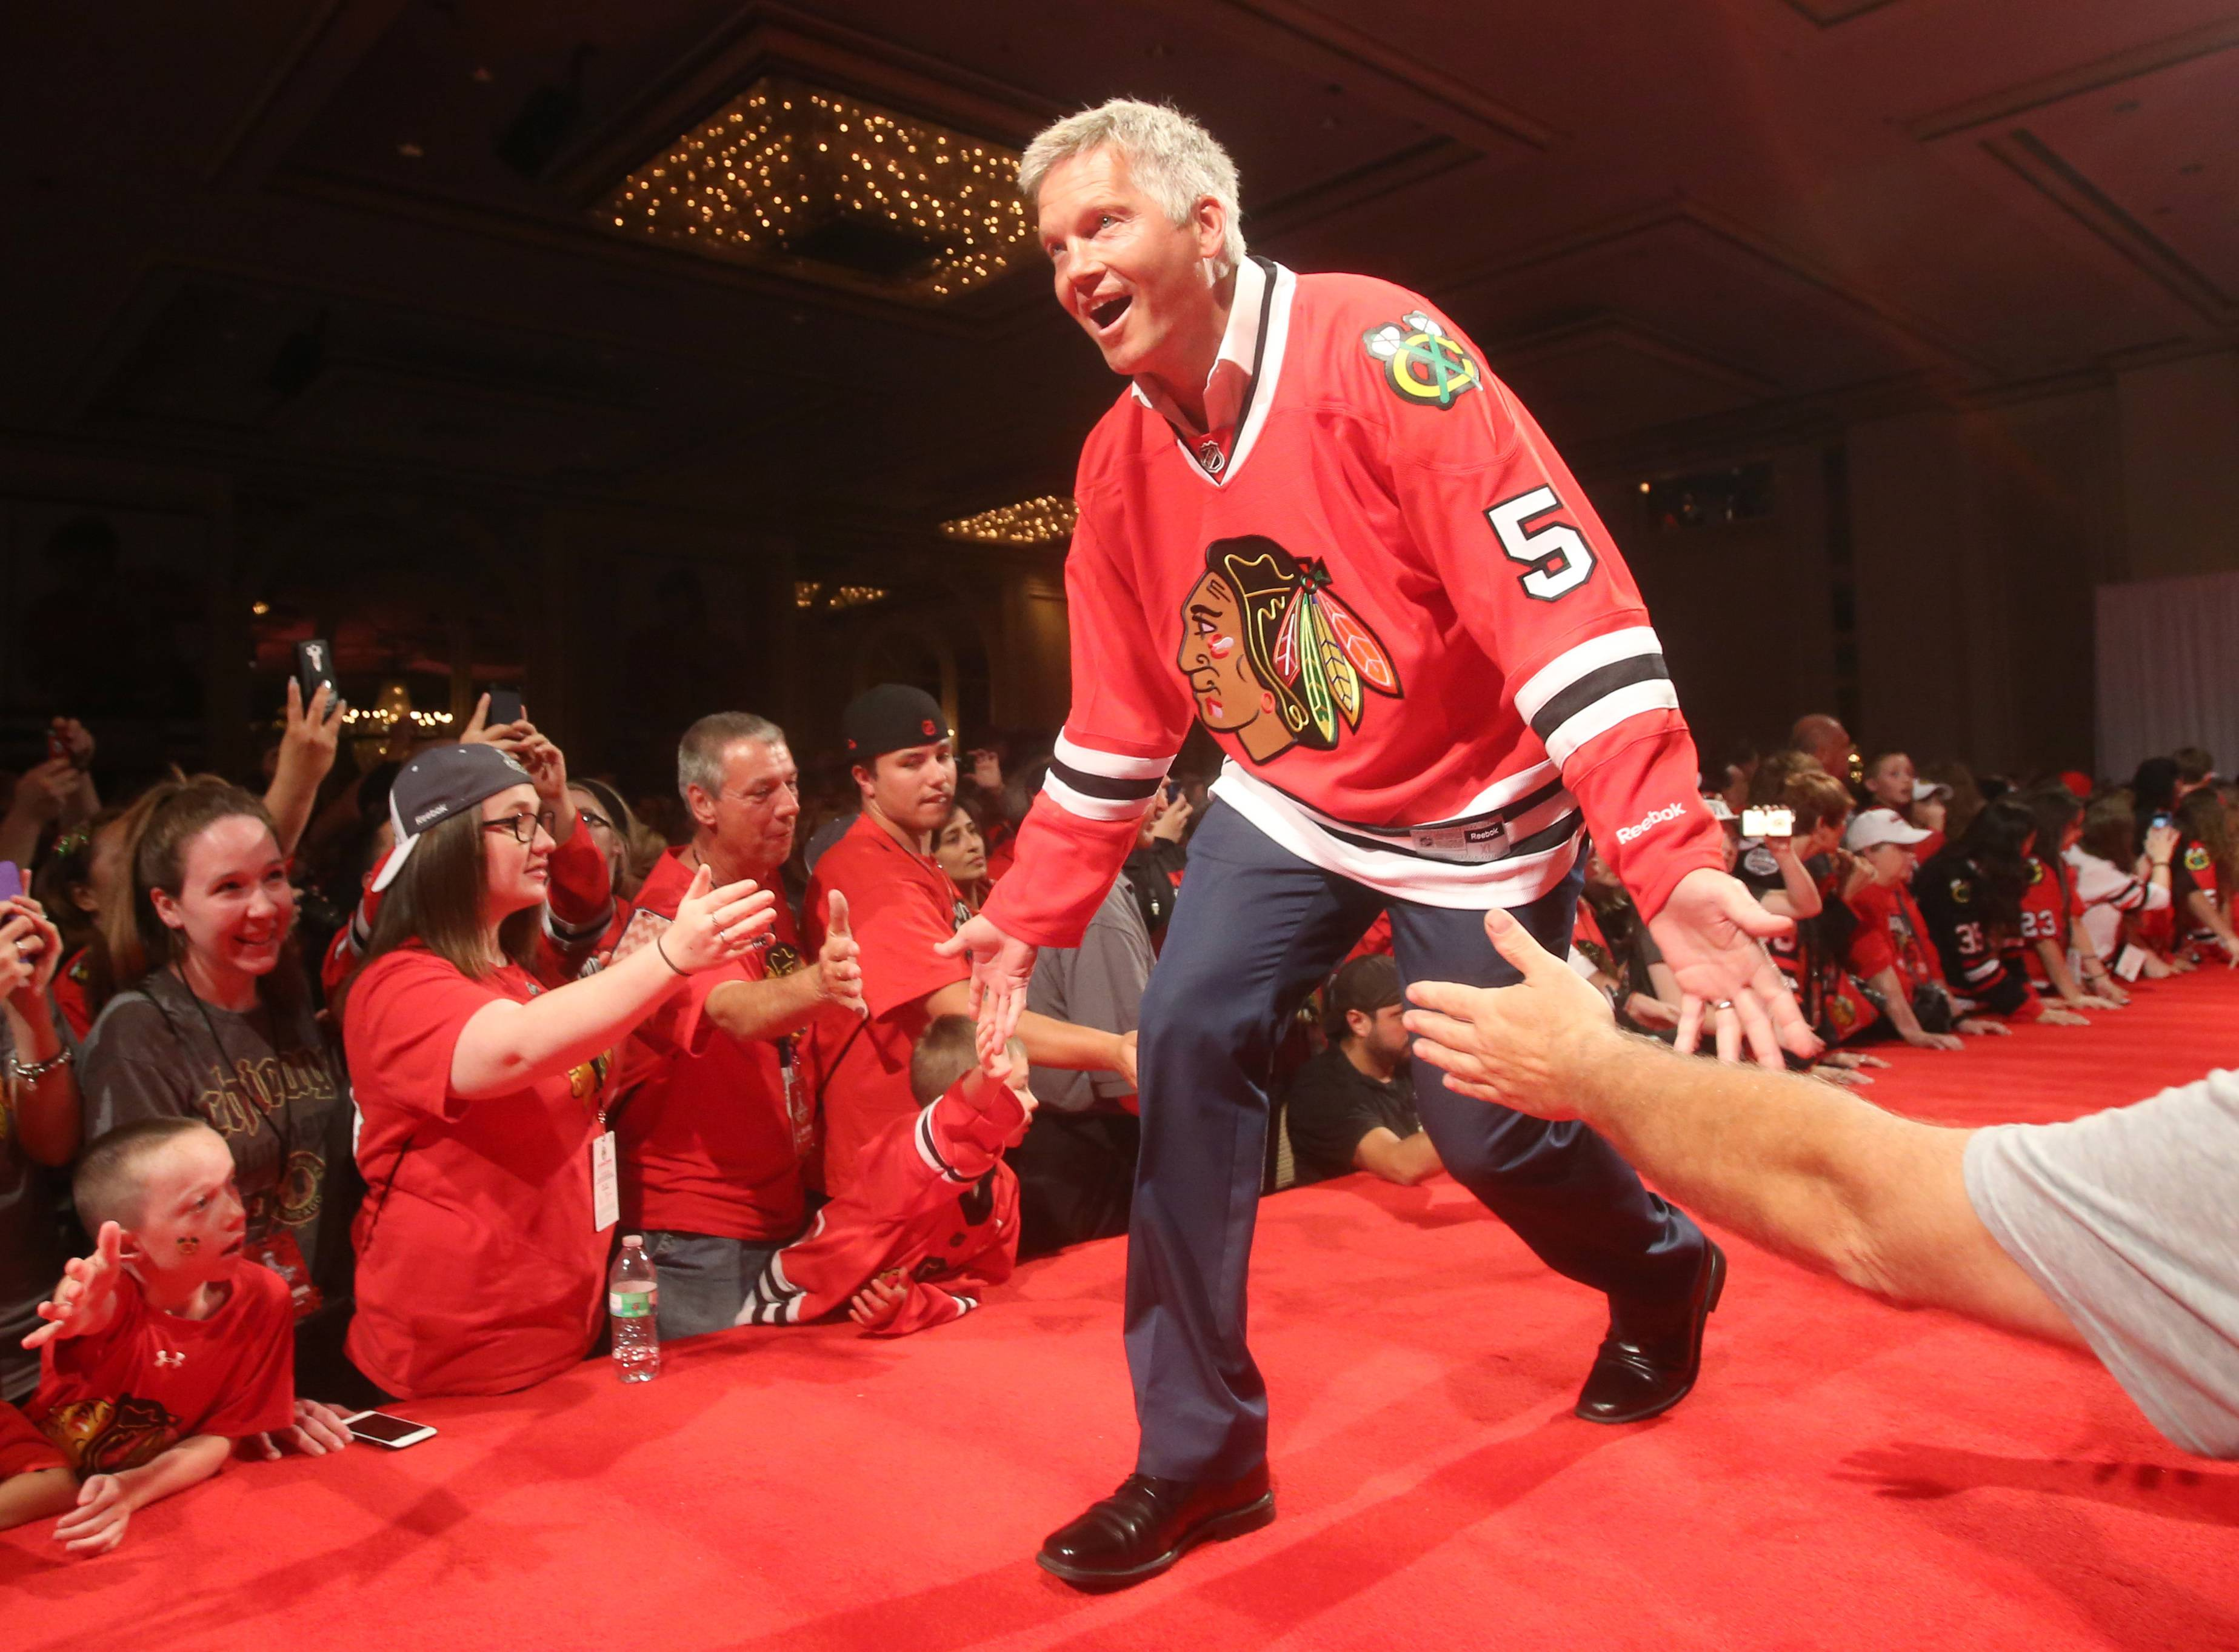 Broadcaster Steve Konroyd says one frugal decision he made at the airport when he was as a Blackhawks player eventually cost him about $200.